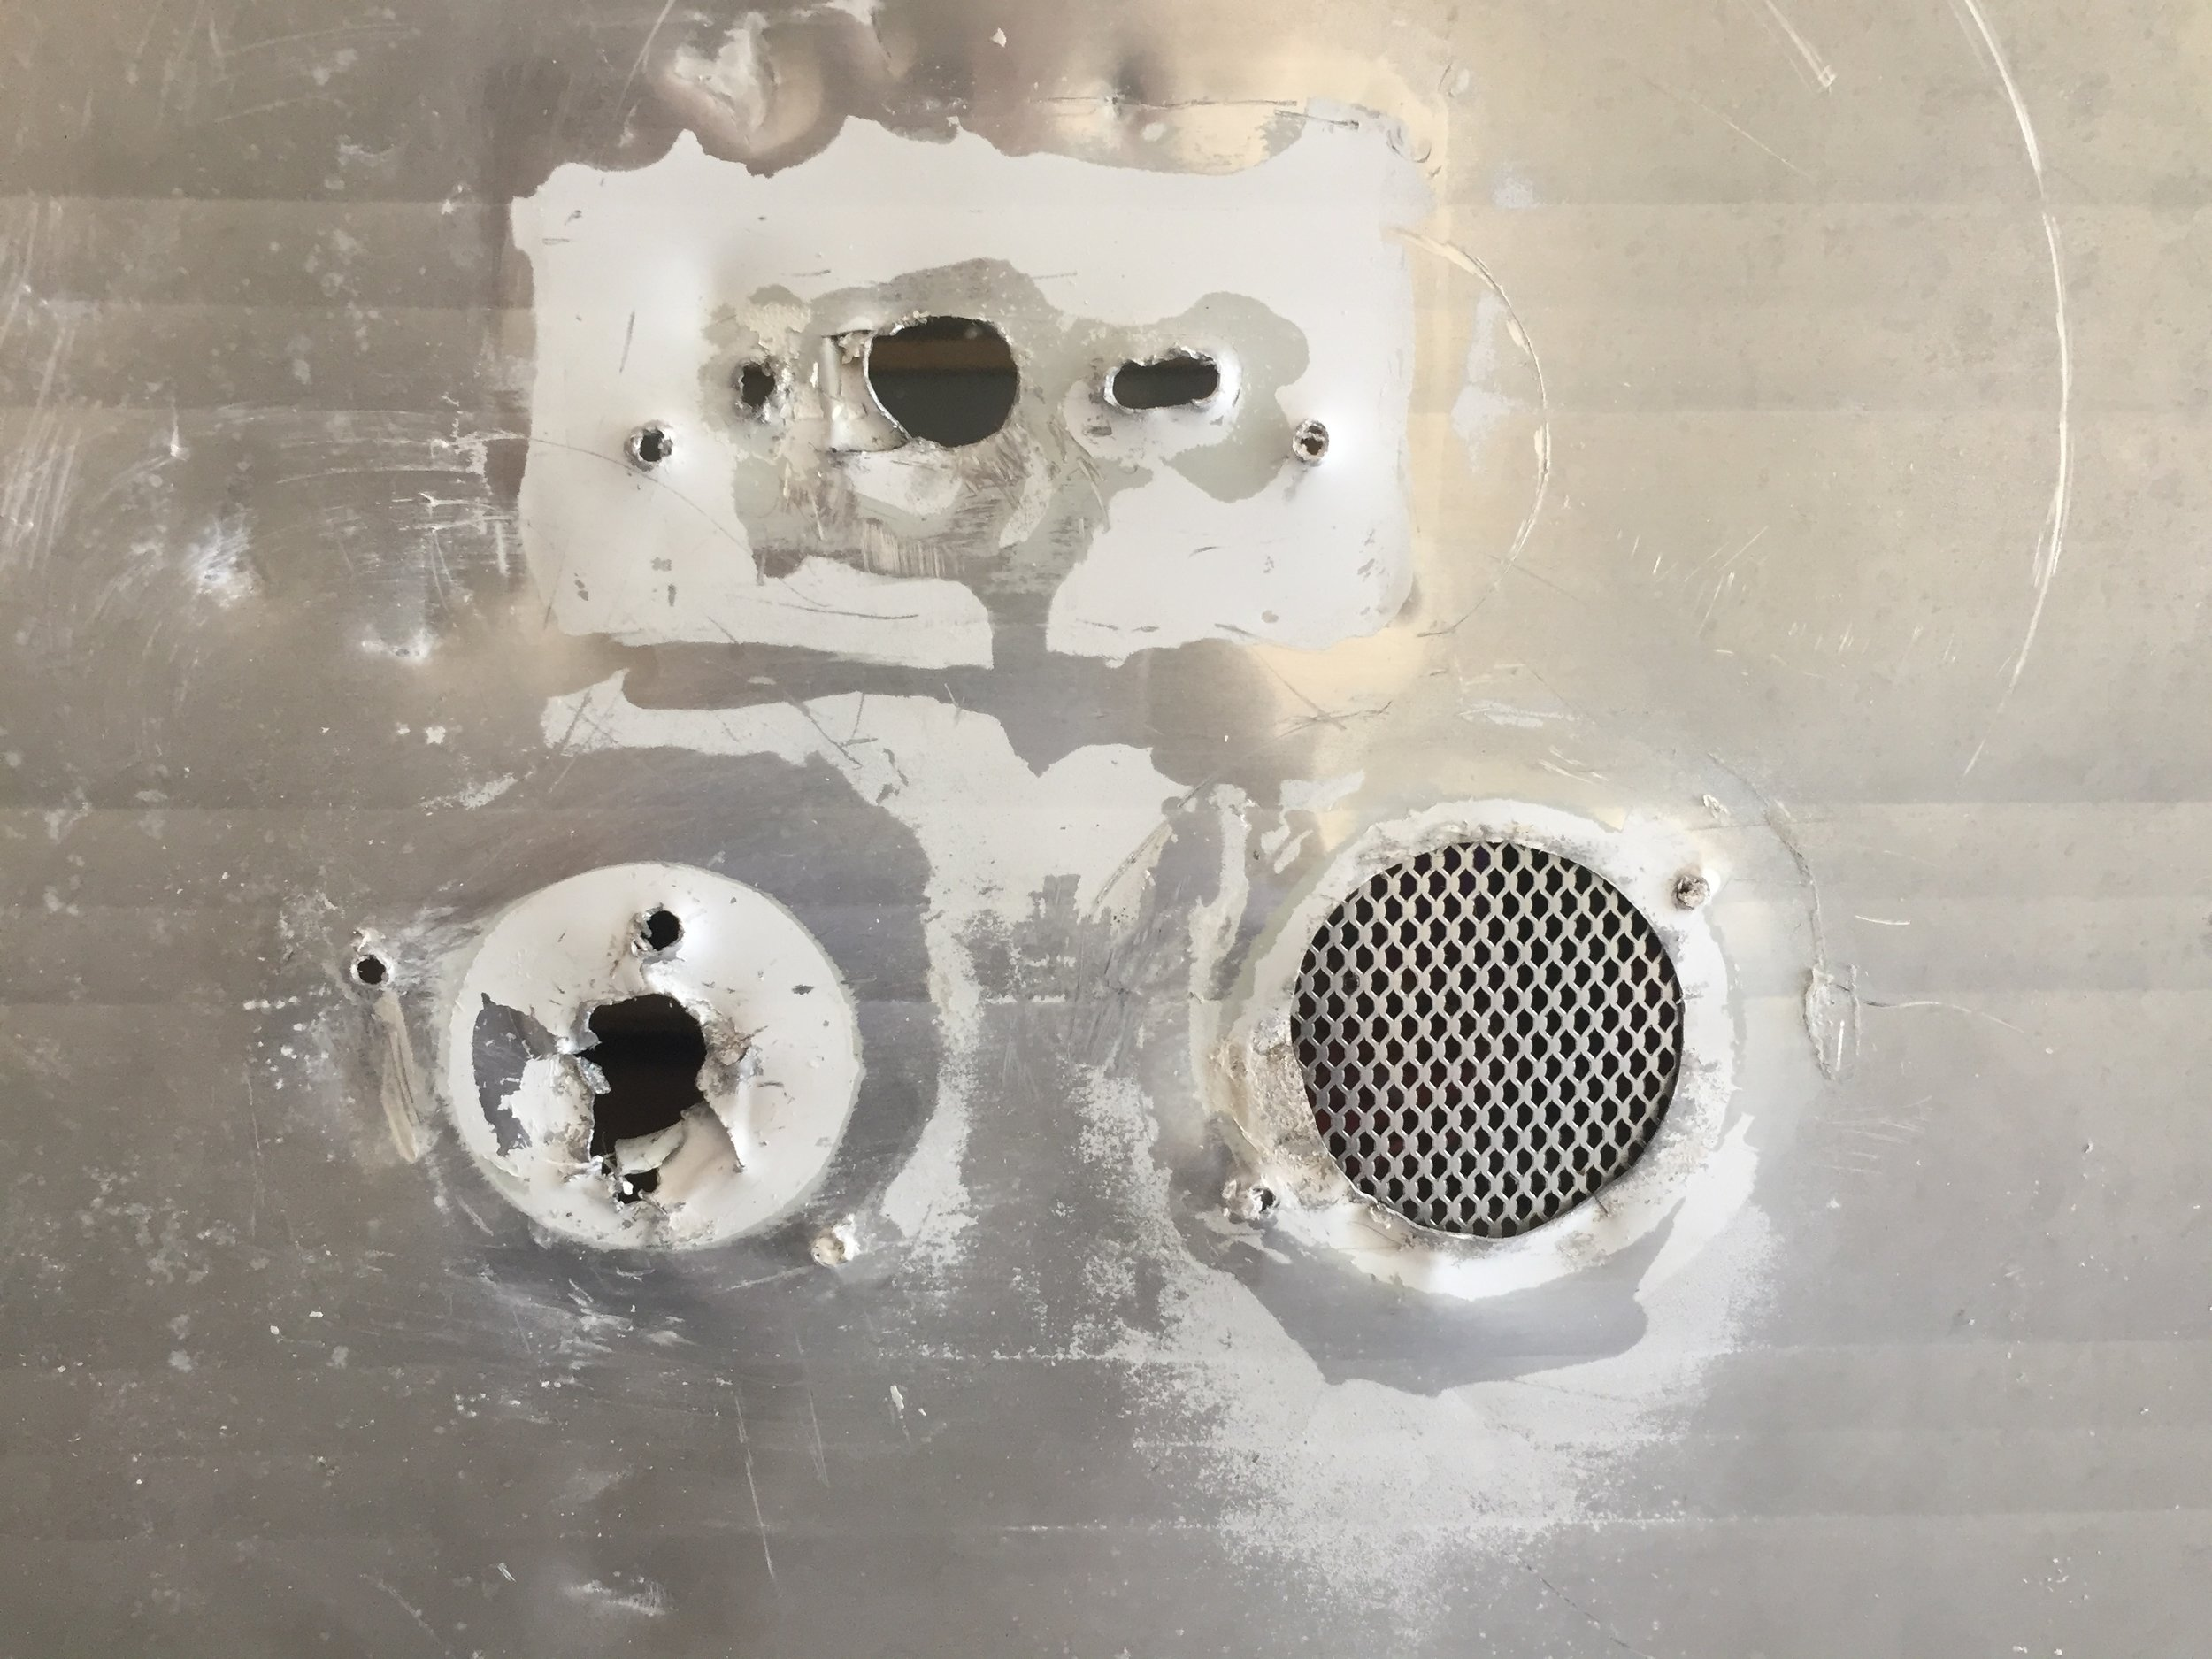 Large holes – the one on the right is shown with the Bondo self adhesive patch in place behind it.